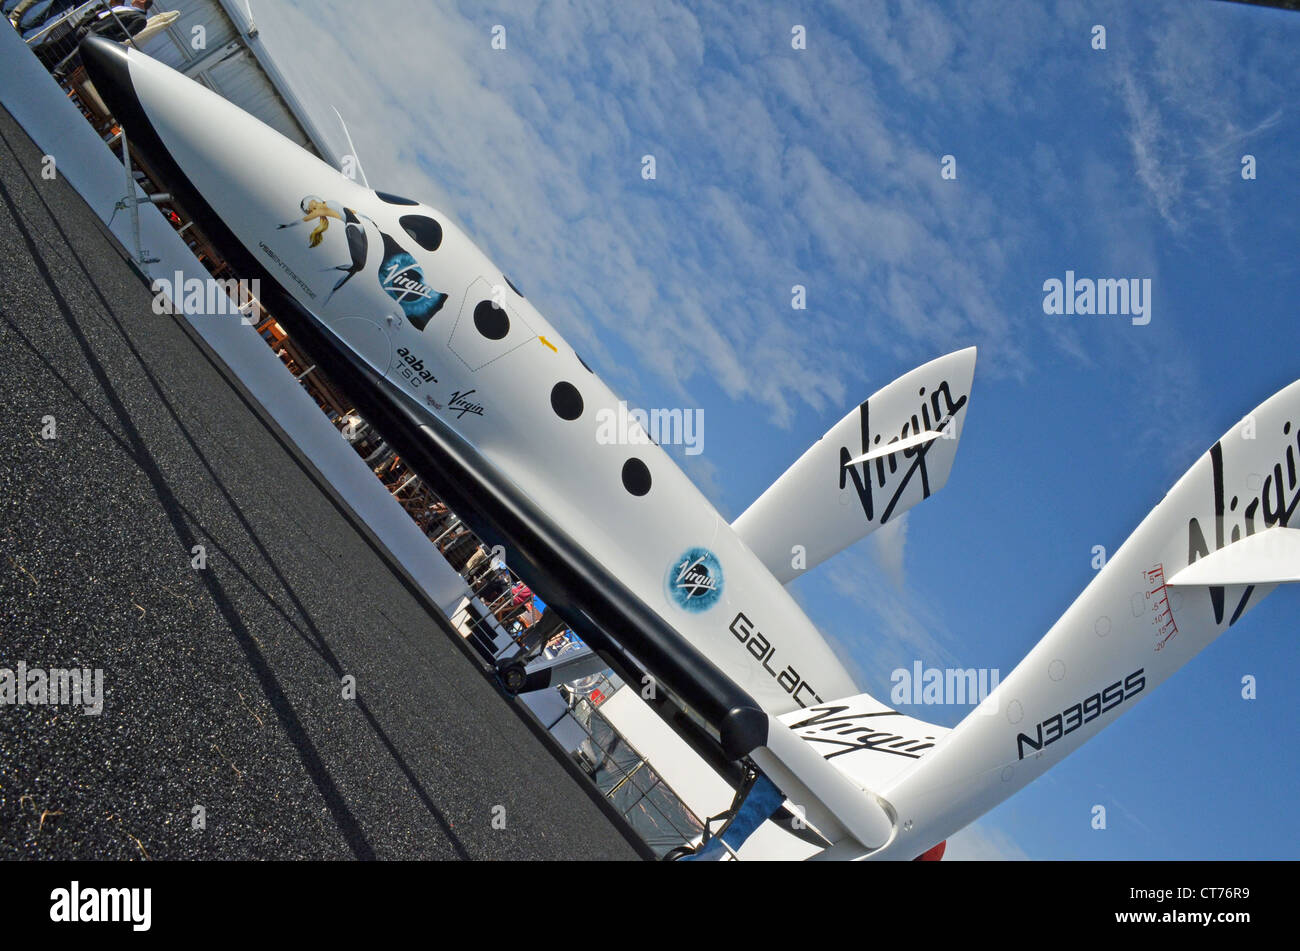 Virgin Galactic's SpaceShipTwo spaceplane at Farnborough 2012 - Stock Image